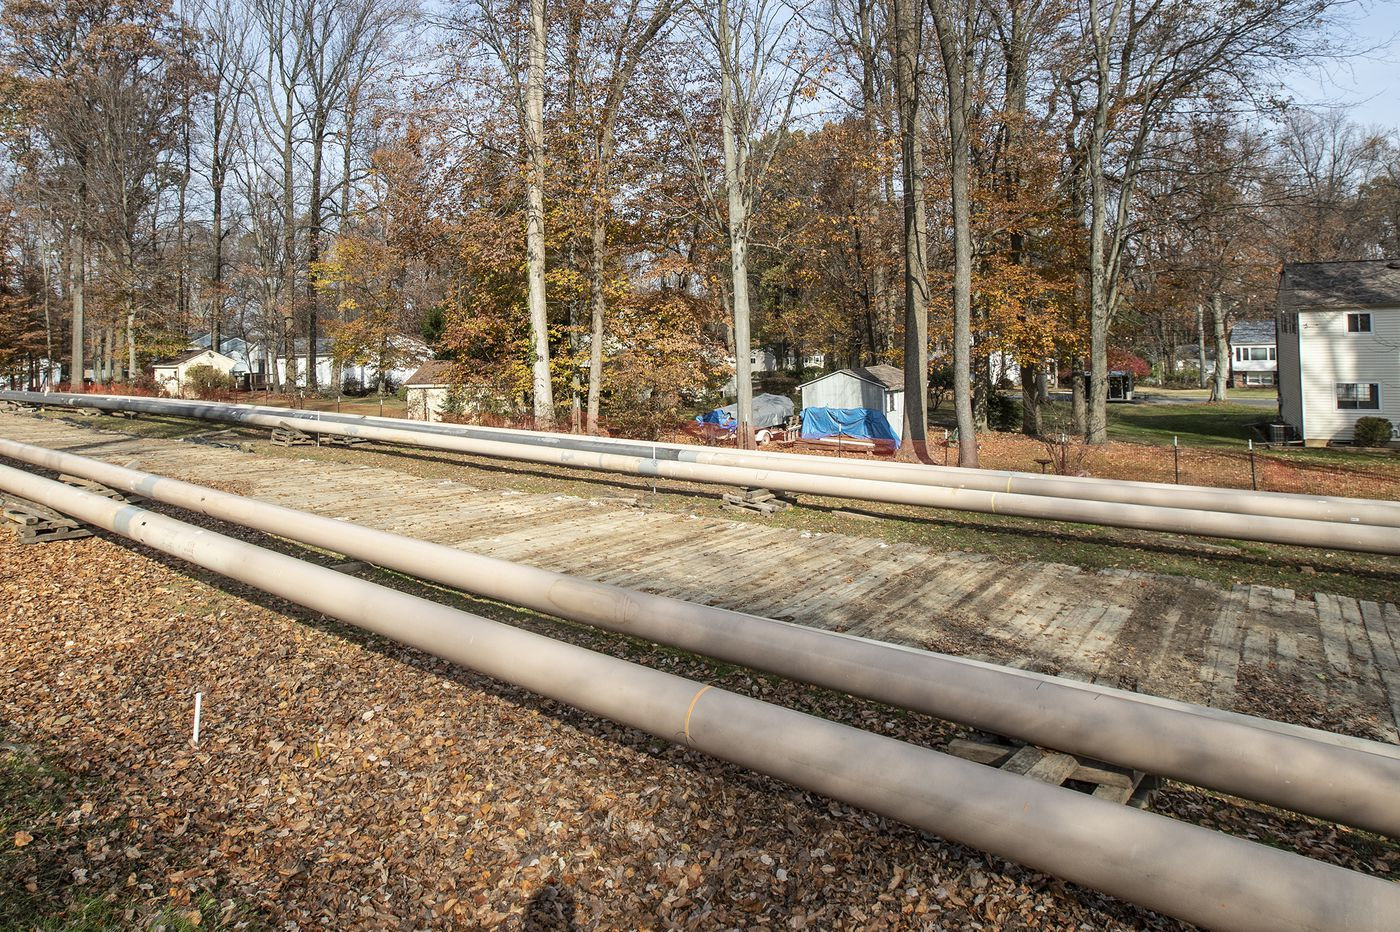 Chester County, other suburbs can lead way on environmental issues | Opinion